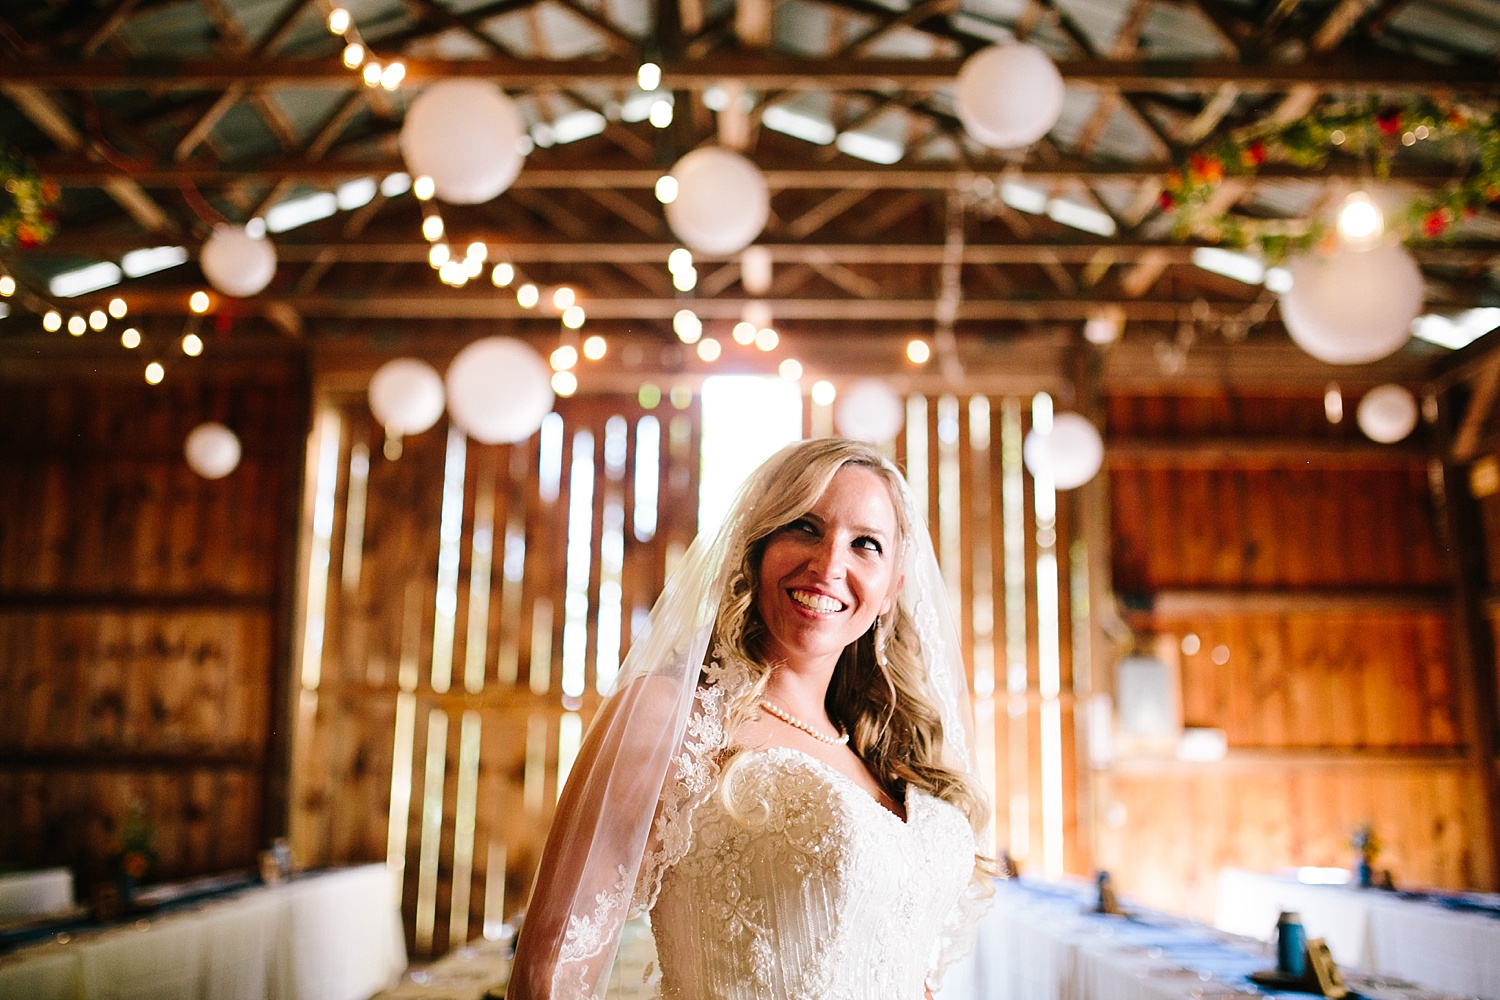 jennyryan_newbeginnings_farmstead_upstatenewyork_wedding_image073.jpg